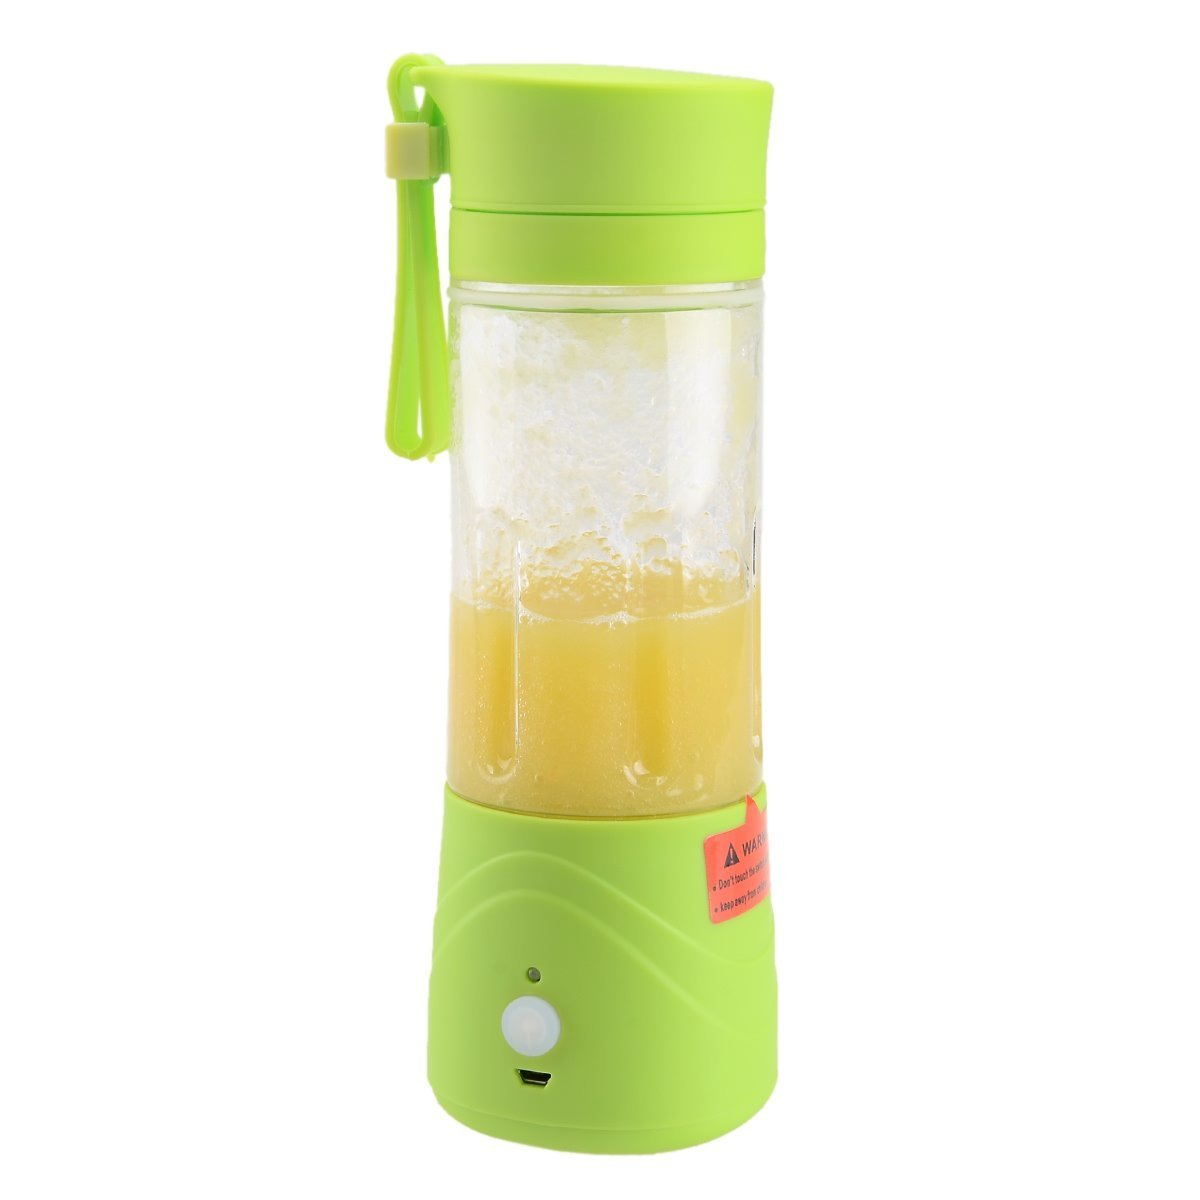 ... QuincyHome Shake n Go Portable with USB Rechargeable Battery 380mlMini Blender Juice - (Botol Kaca ...